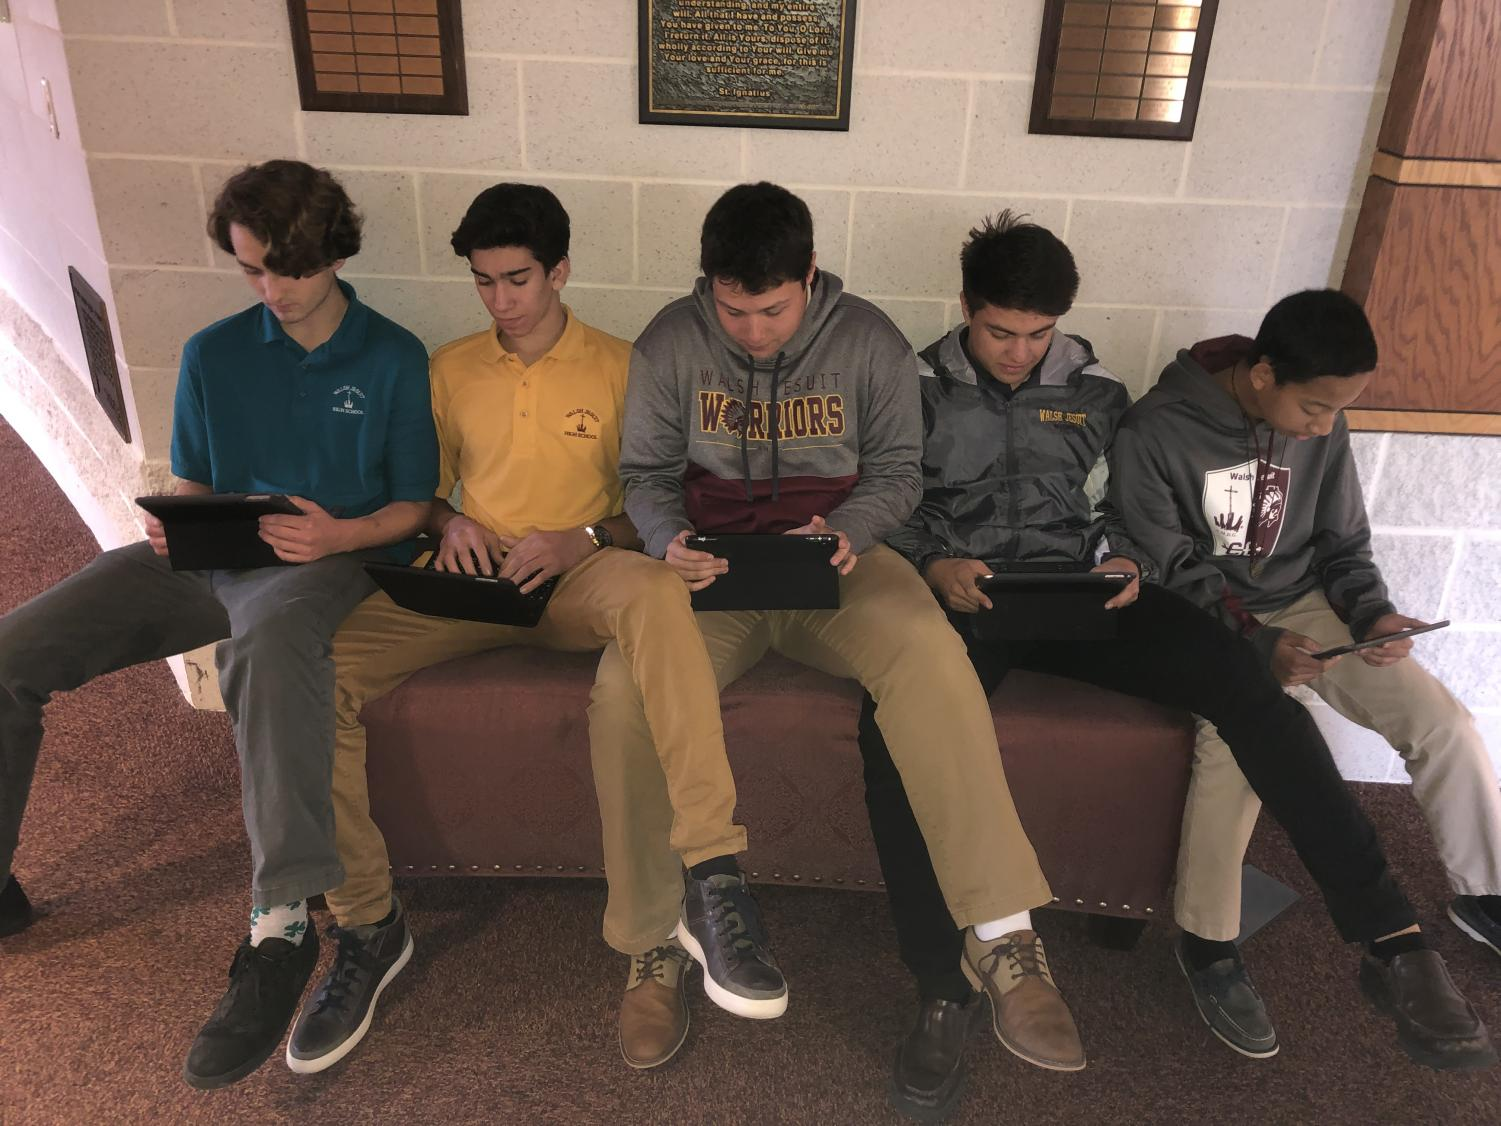 These juniors, like many others, pile up along the hallway by the business offices leading to the Chapel to use their iPads.